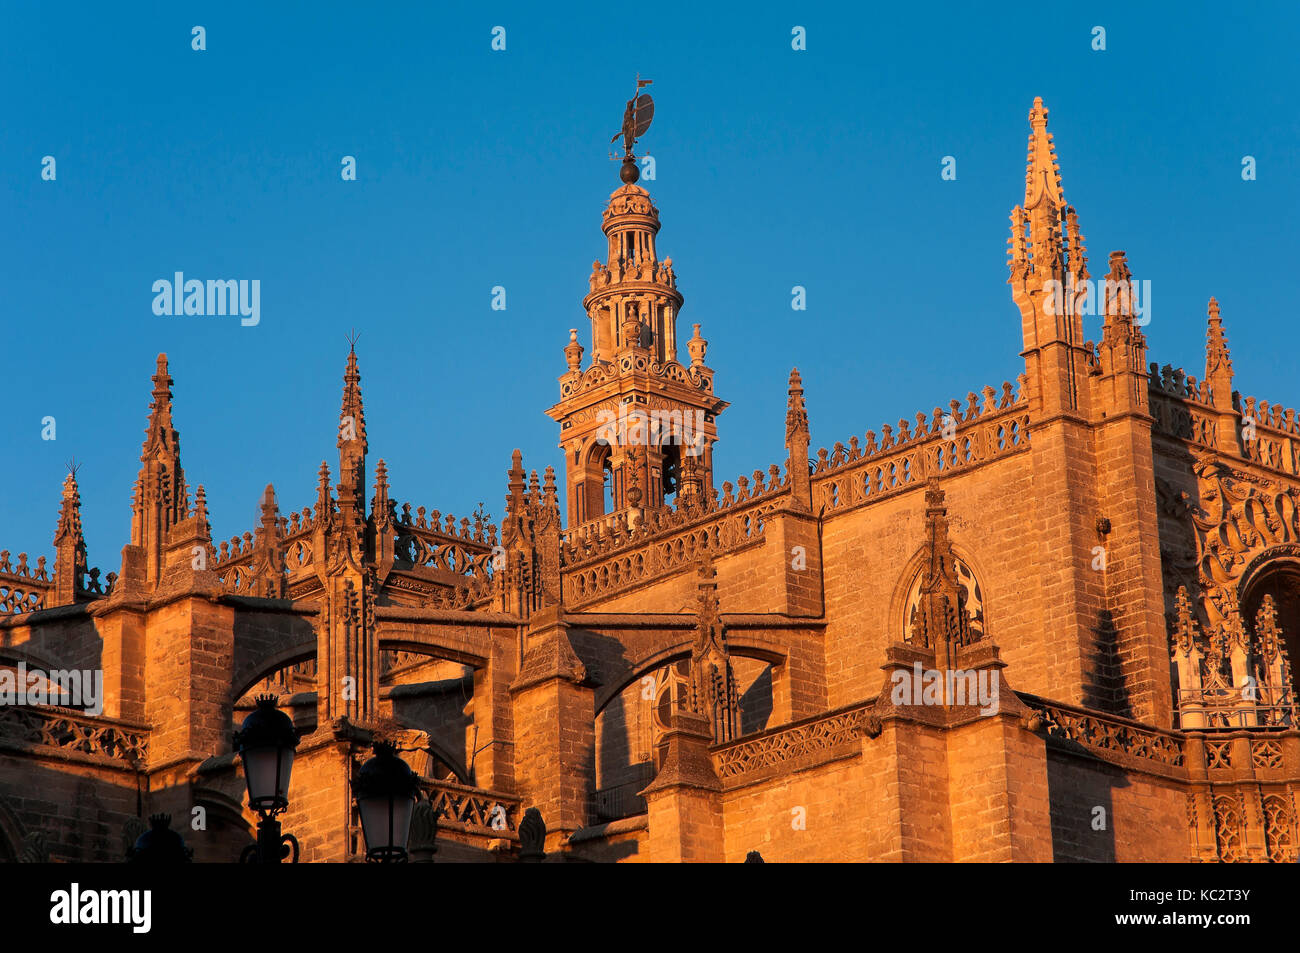 Cathedral and Giralda tower, Seville, Region of Andalusia, Spain, Europe Stock Photo